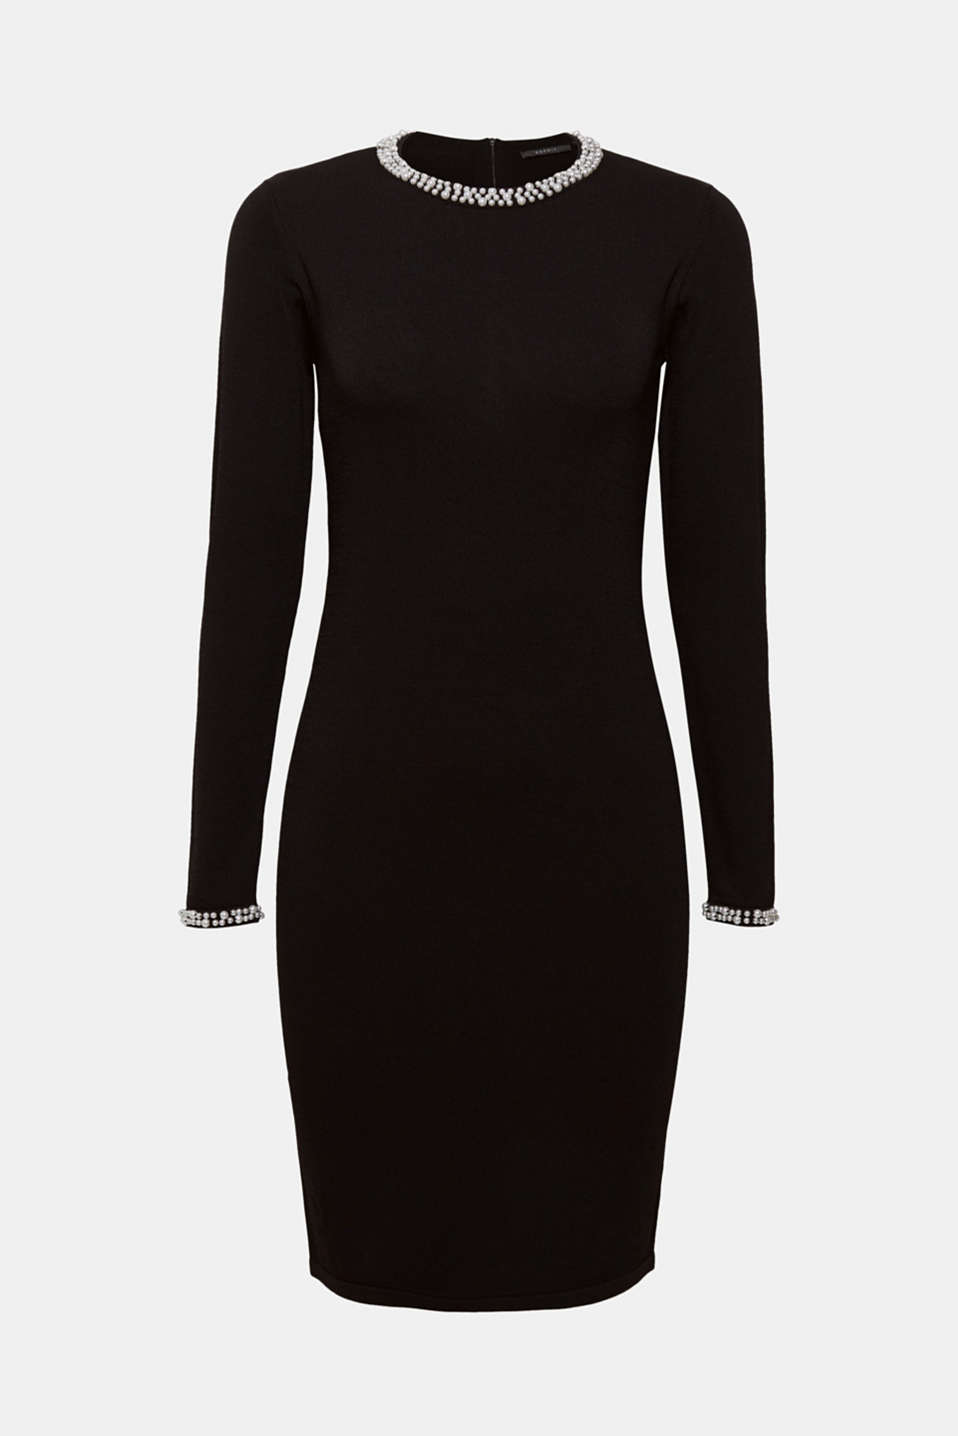 This figure-enhancing, shaping knitted dress creates a beautiful silhouette and features decorative beads on the neckline and sleeve ends.